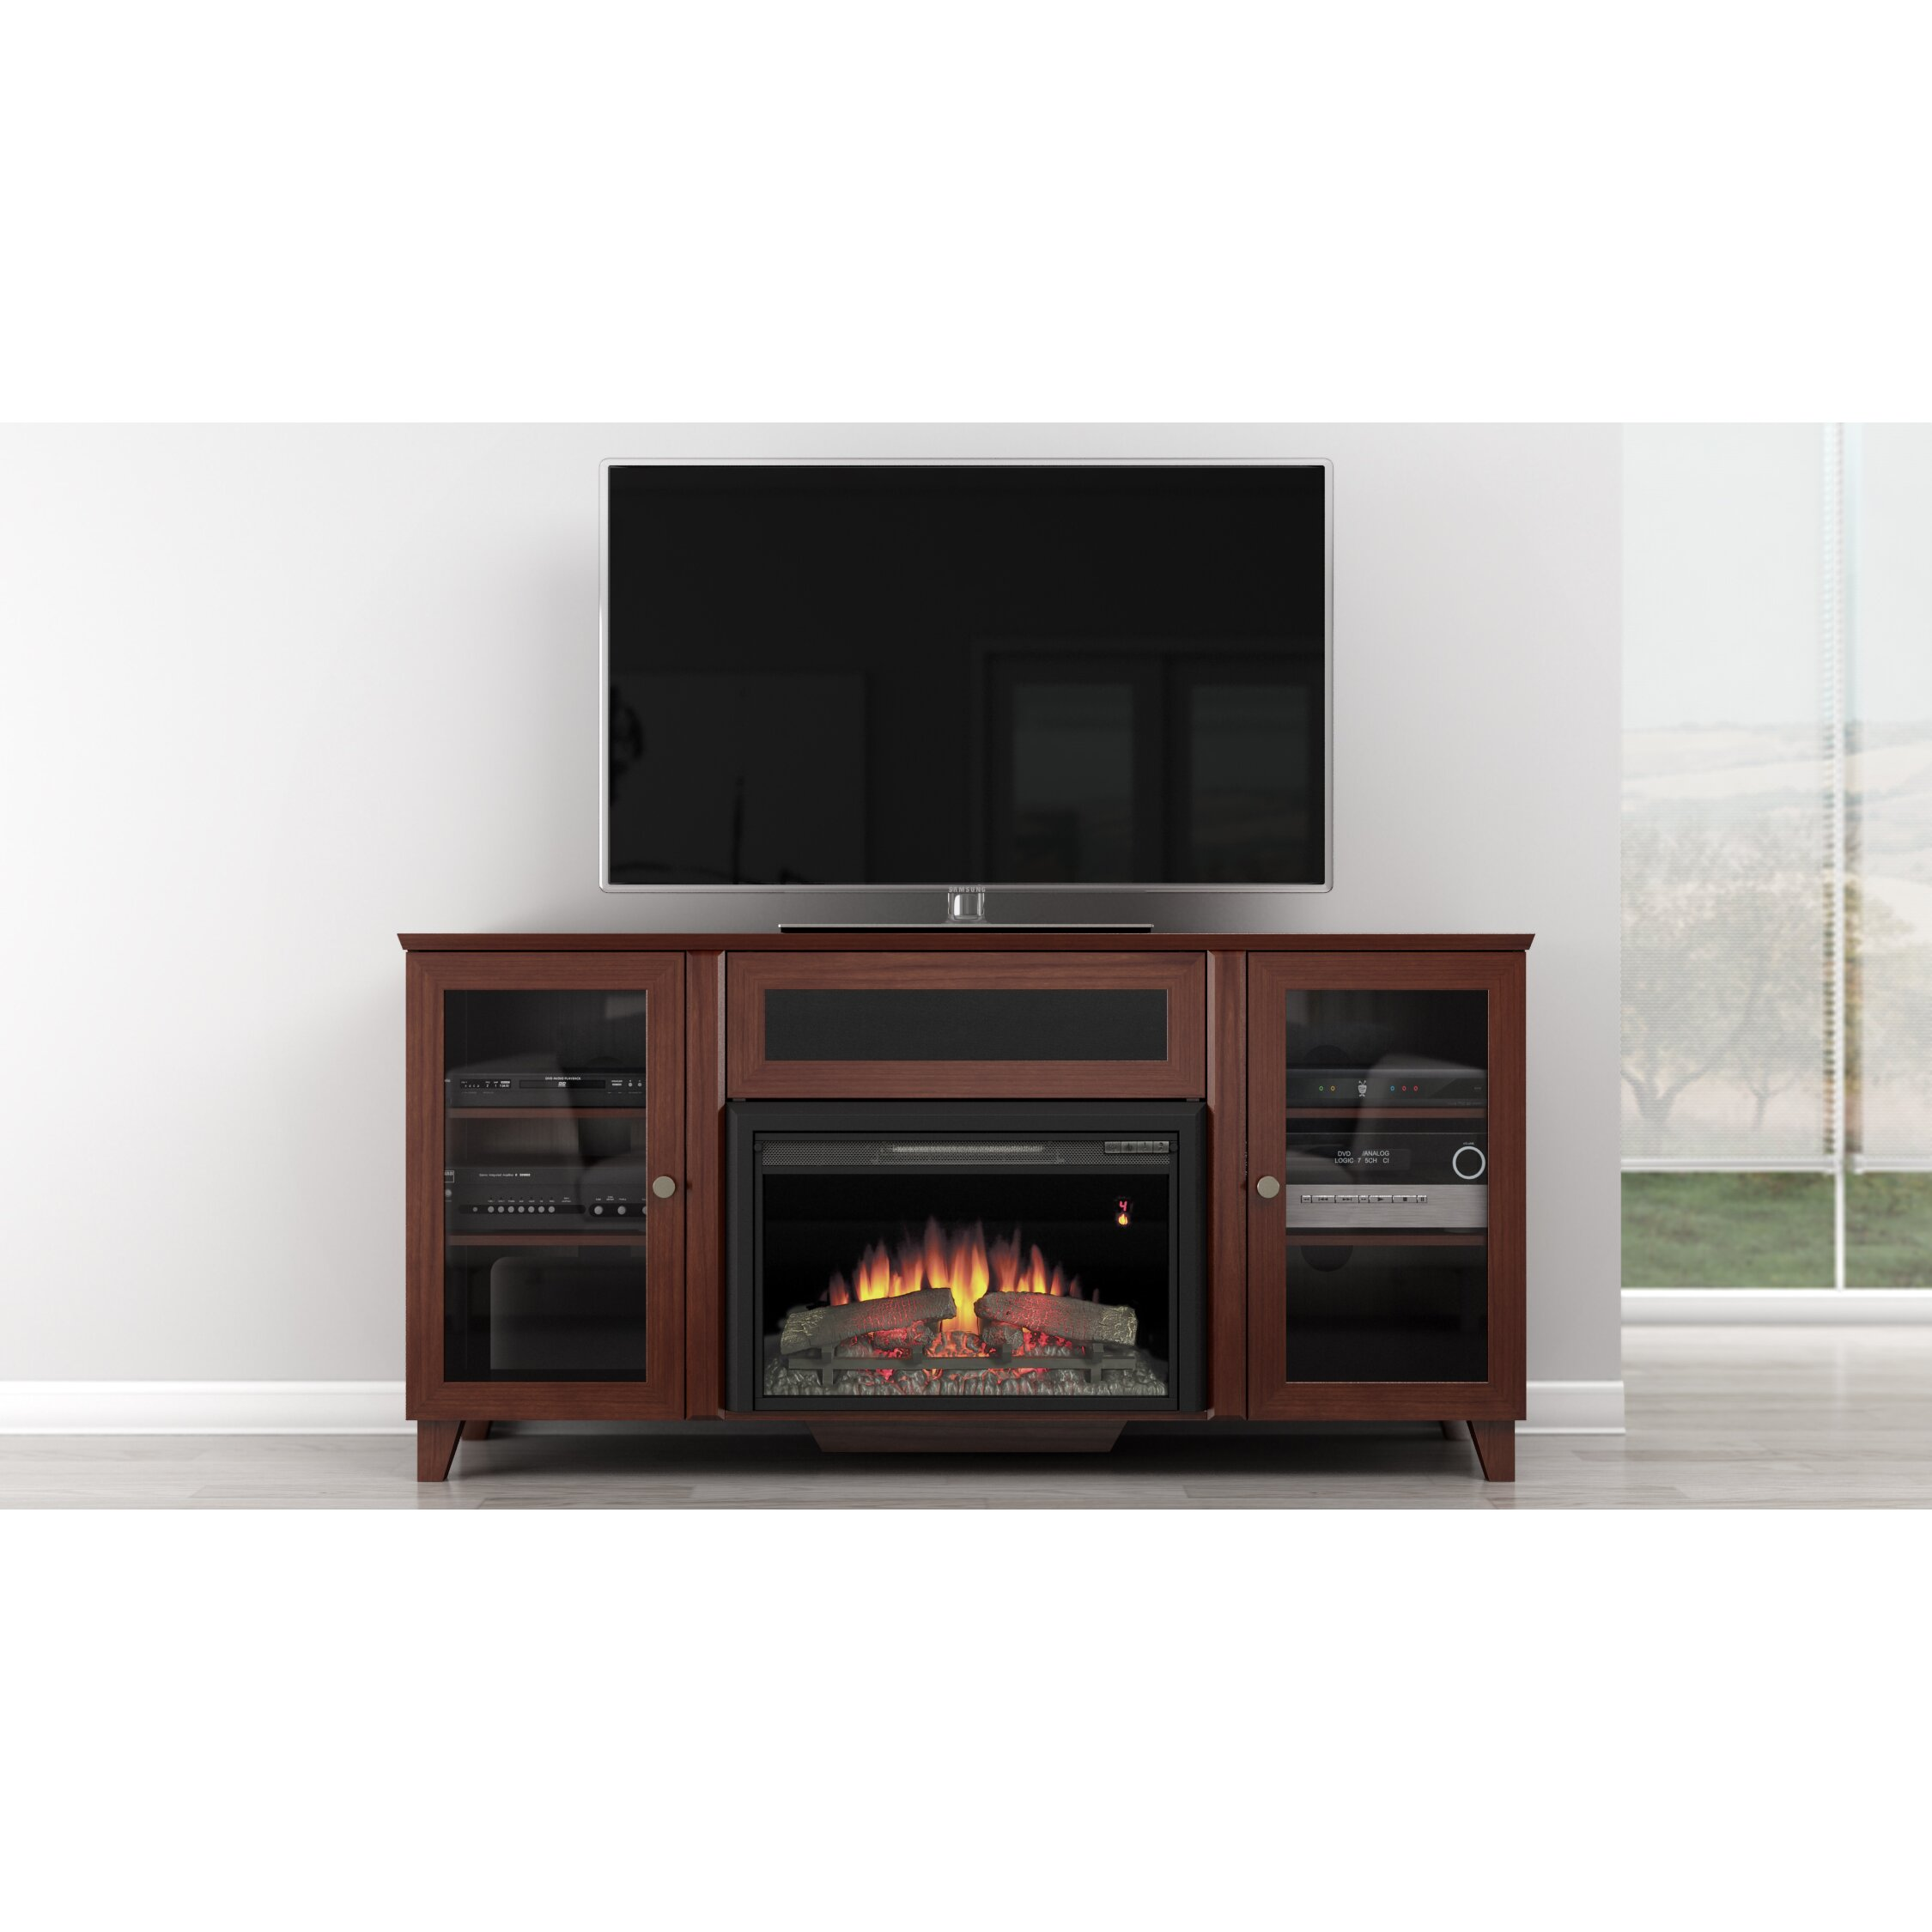 Stylish Electric Fireplace Tv Stand ~ crowdbuild for .